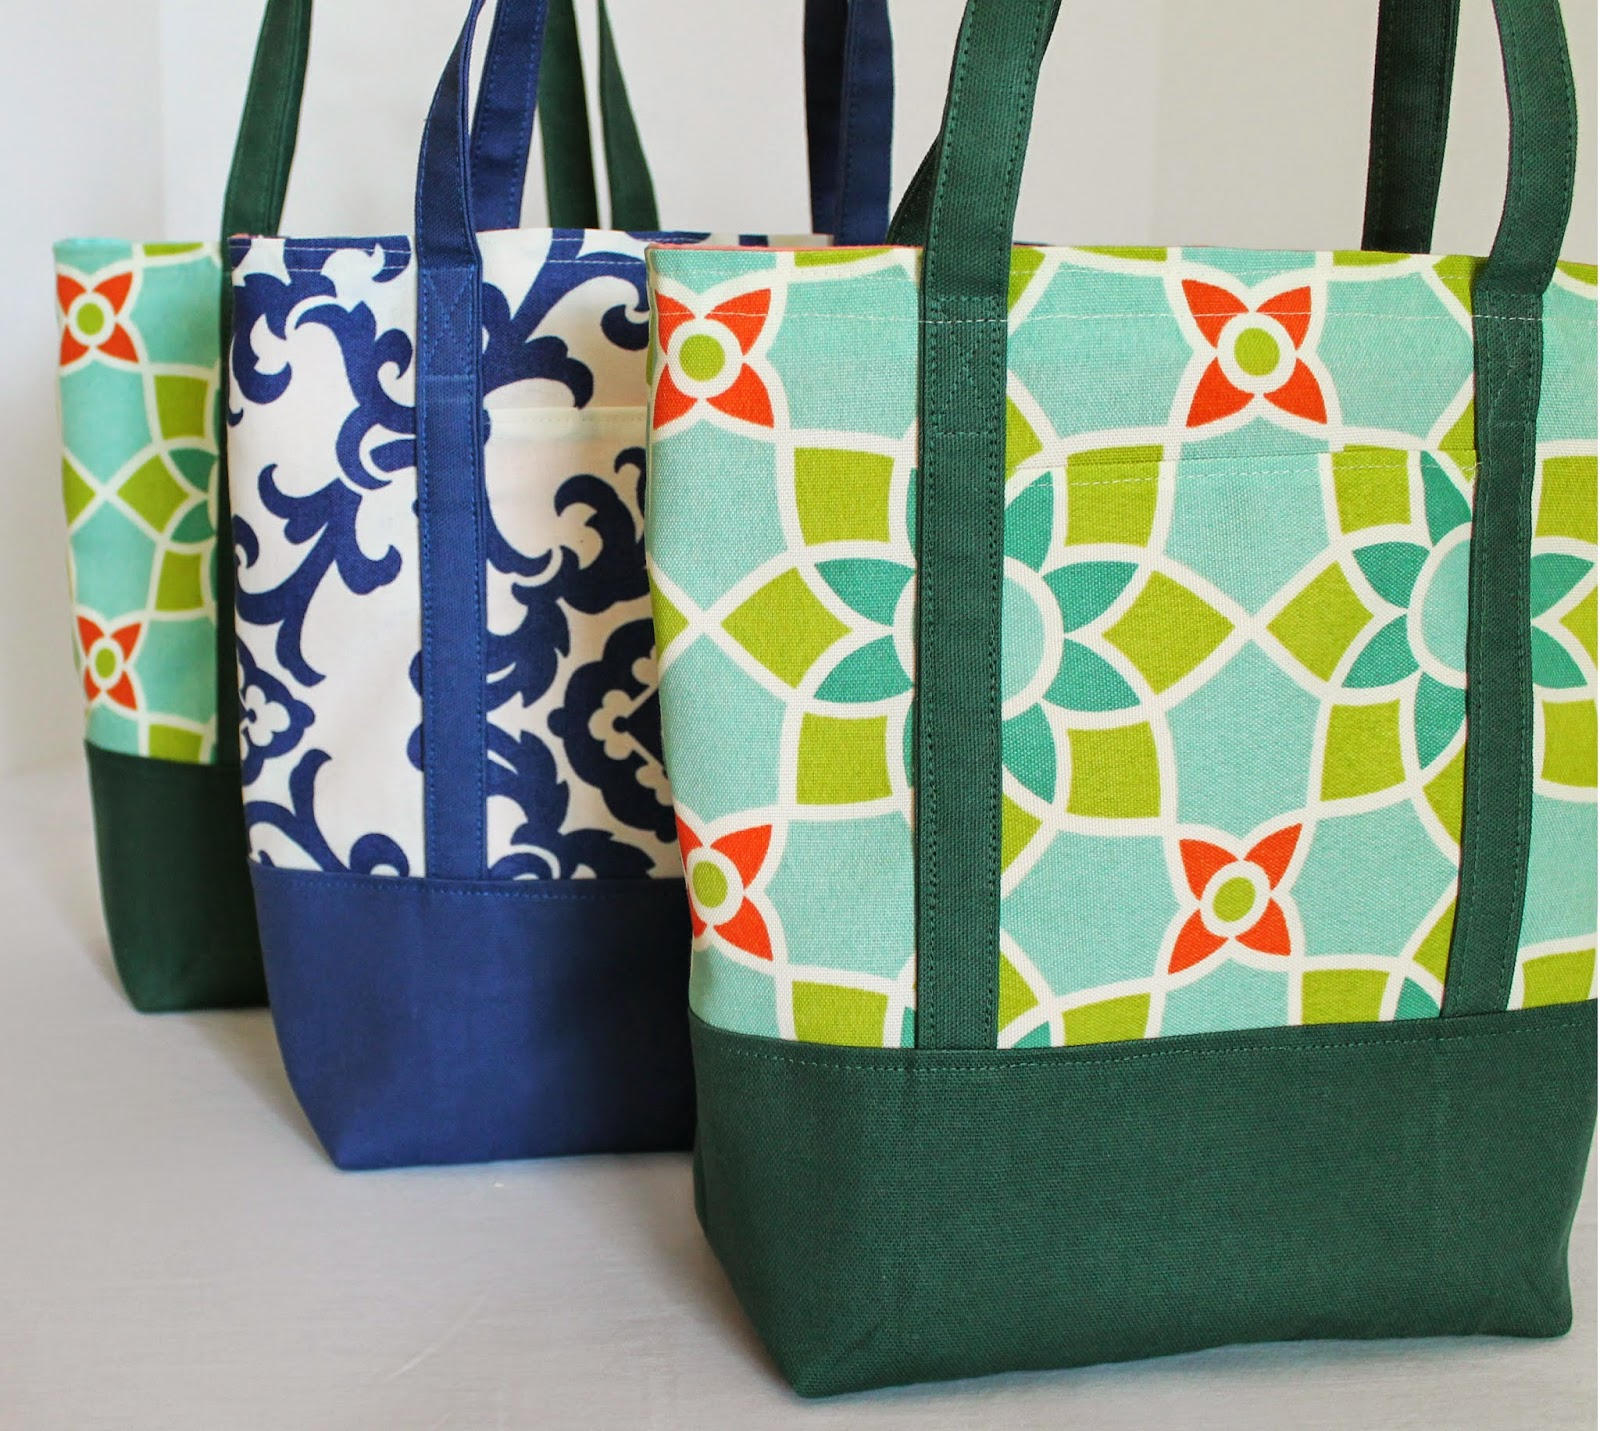 Lined Canvas Tote Bags for Amazing Teachers | The Inspired Wren